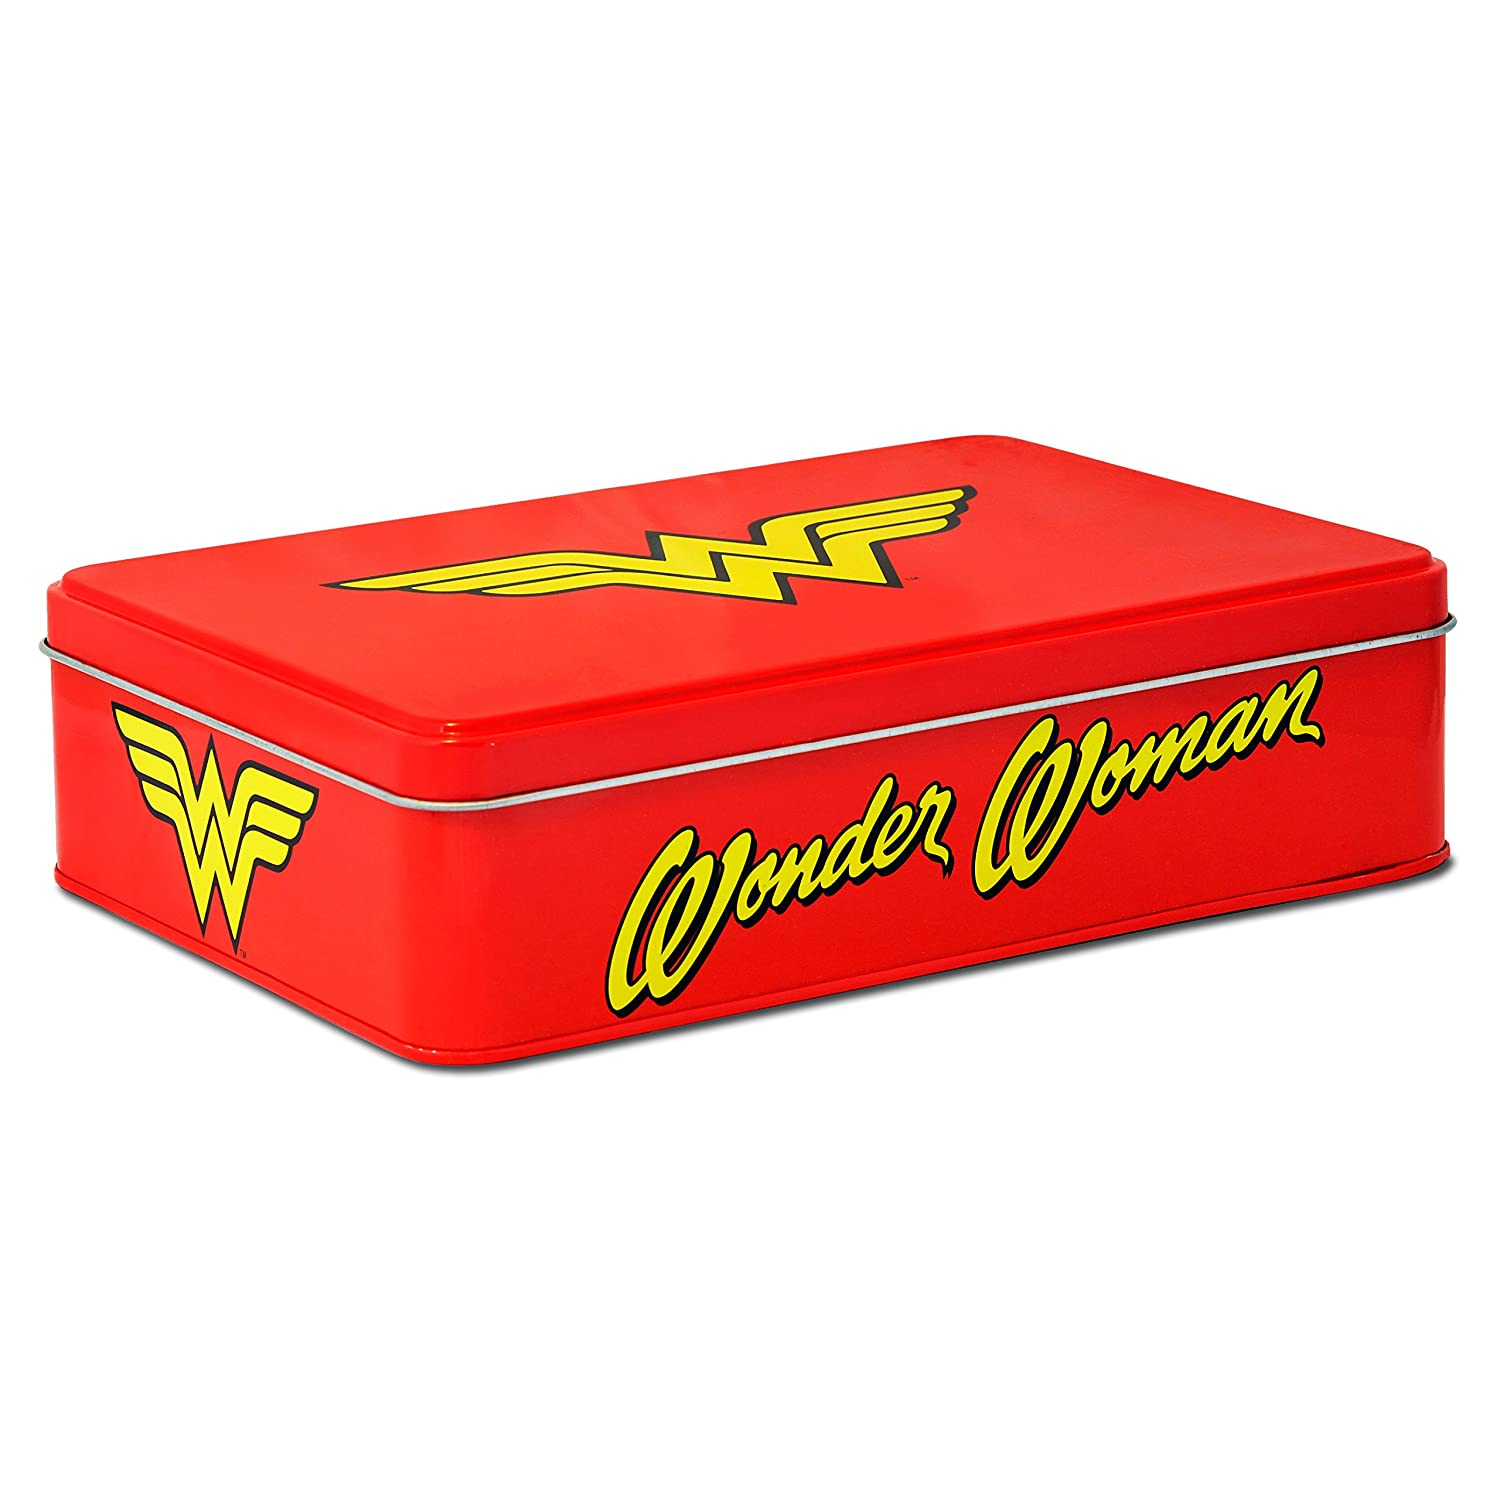 Wonder Woman 6395349010 Lata (Metal, Rojo, 21 x 5,5 x 15 cm ...